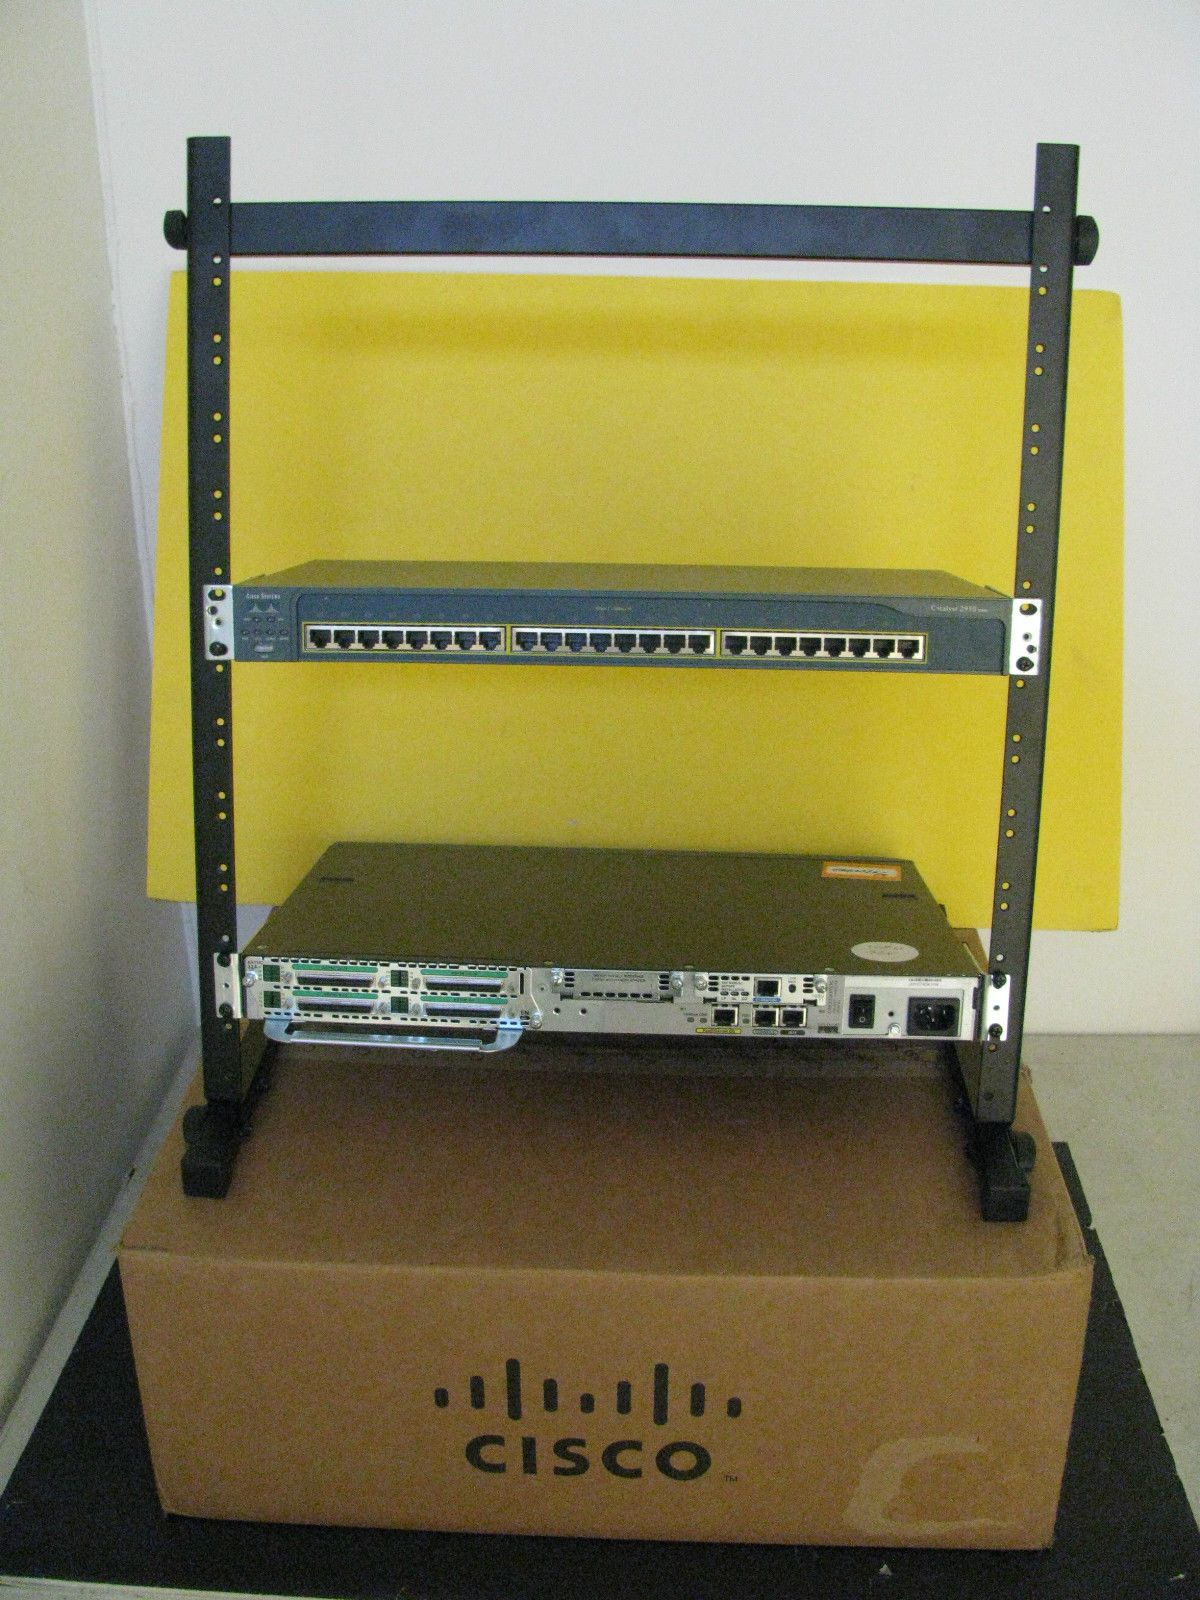 hight resolution of cisco 12u 19 rack ccna ccnp ccie network lab 3524 3550 2500 2600 2800 3560 3750 ebay this is a top pick